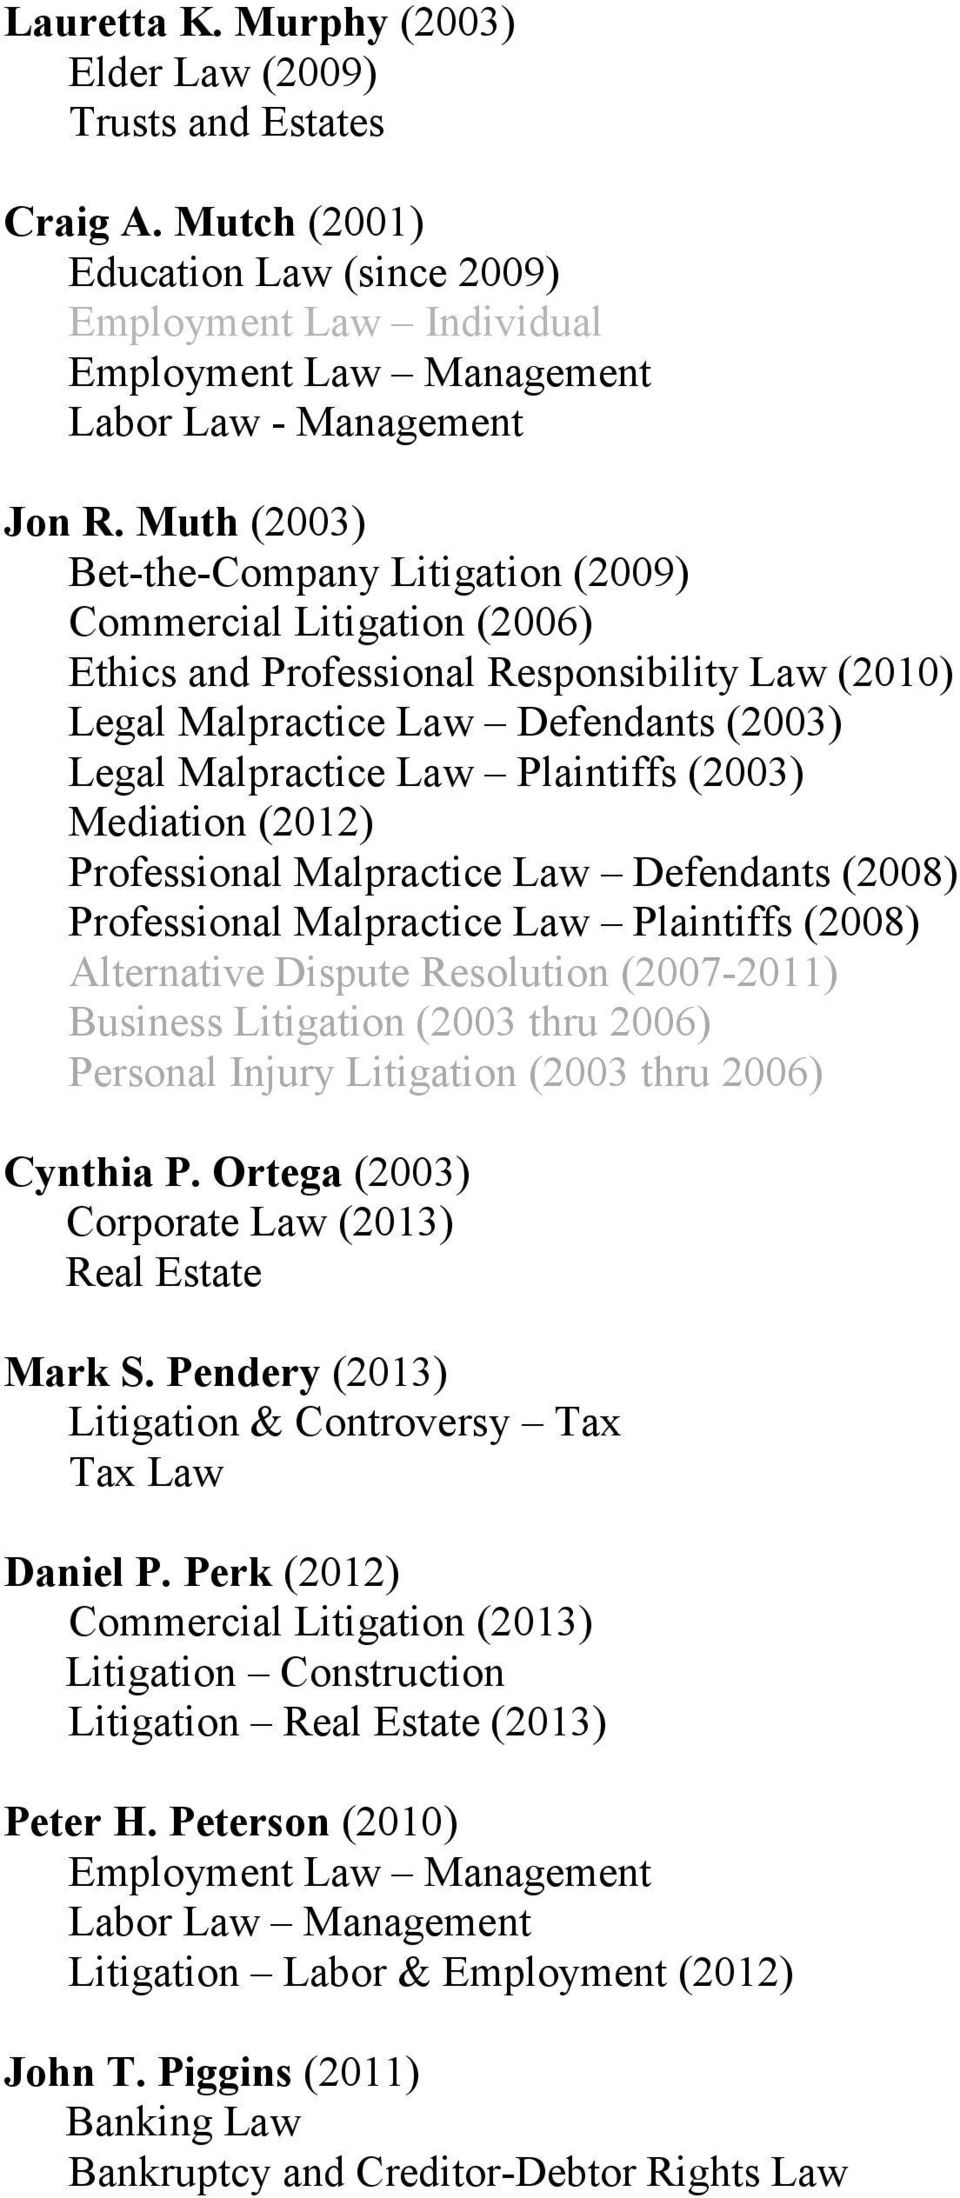 (2003) Mediation (2012) Professional Malpractice Law Defendants (2008) Professional Malpractice Law Plaintiffs (2008) Alternative Dispute Resolution (2007-2011) Business Litigation (2003 thru 2006)